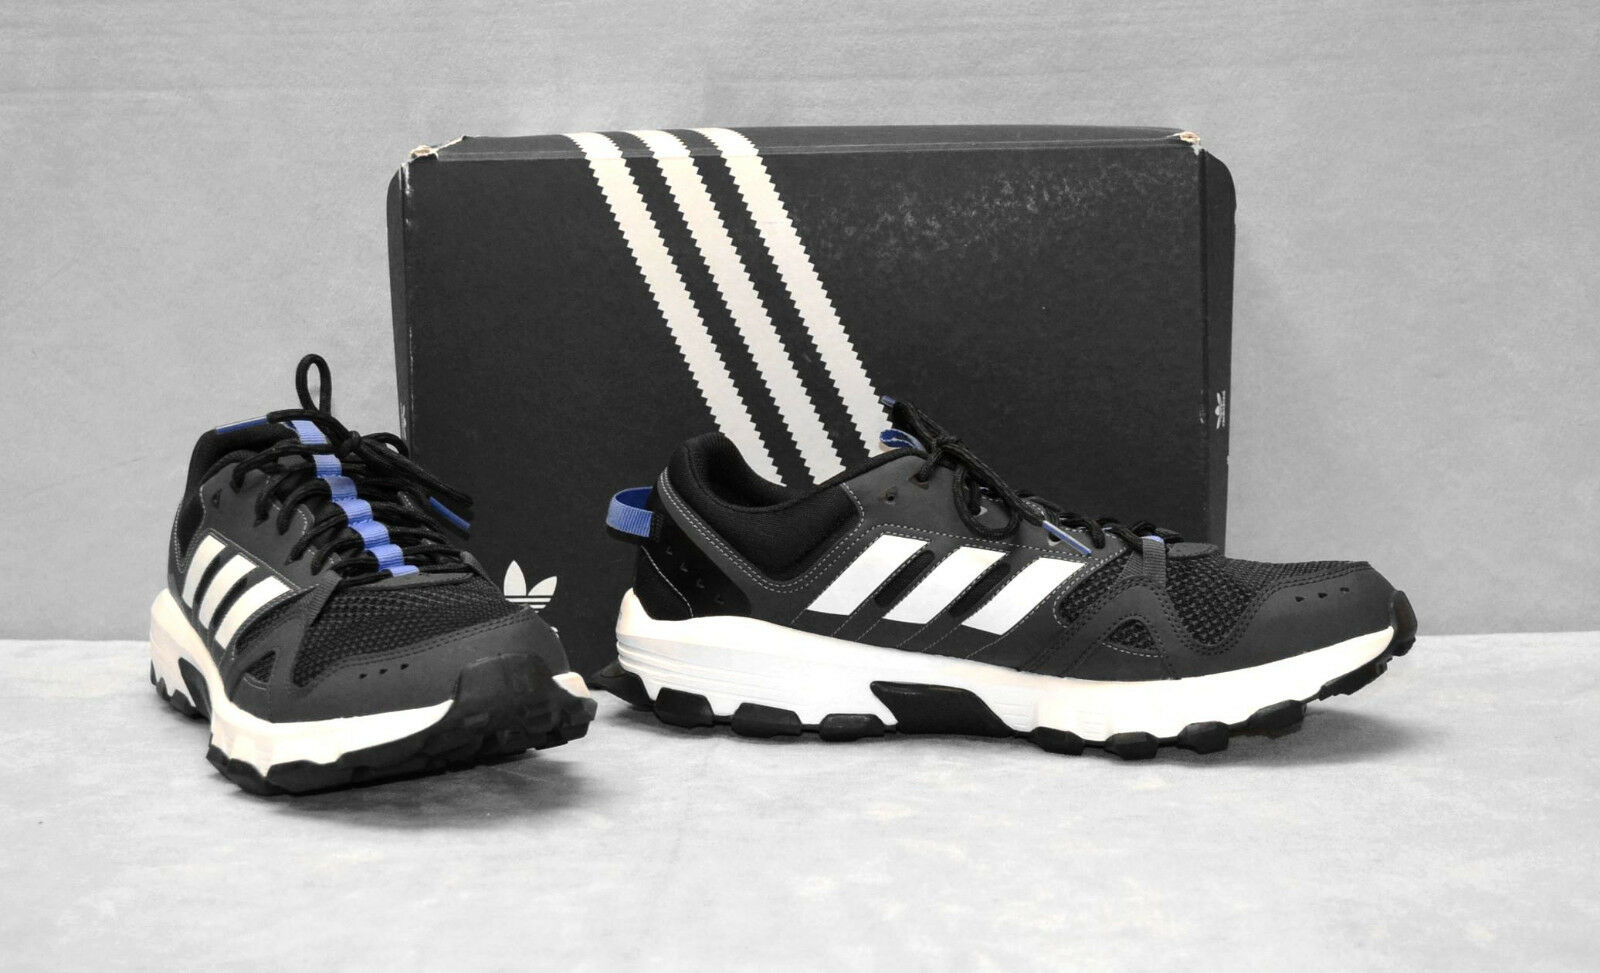 B5 NEW ADIDAS Men's Rockadia Ortholite Footbed Trail Running Sneaker Shoes Sz 12